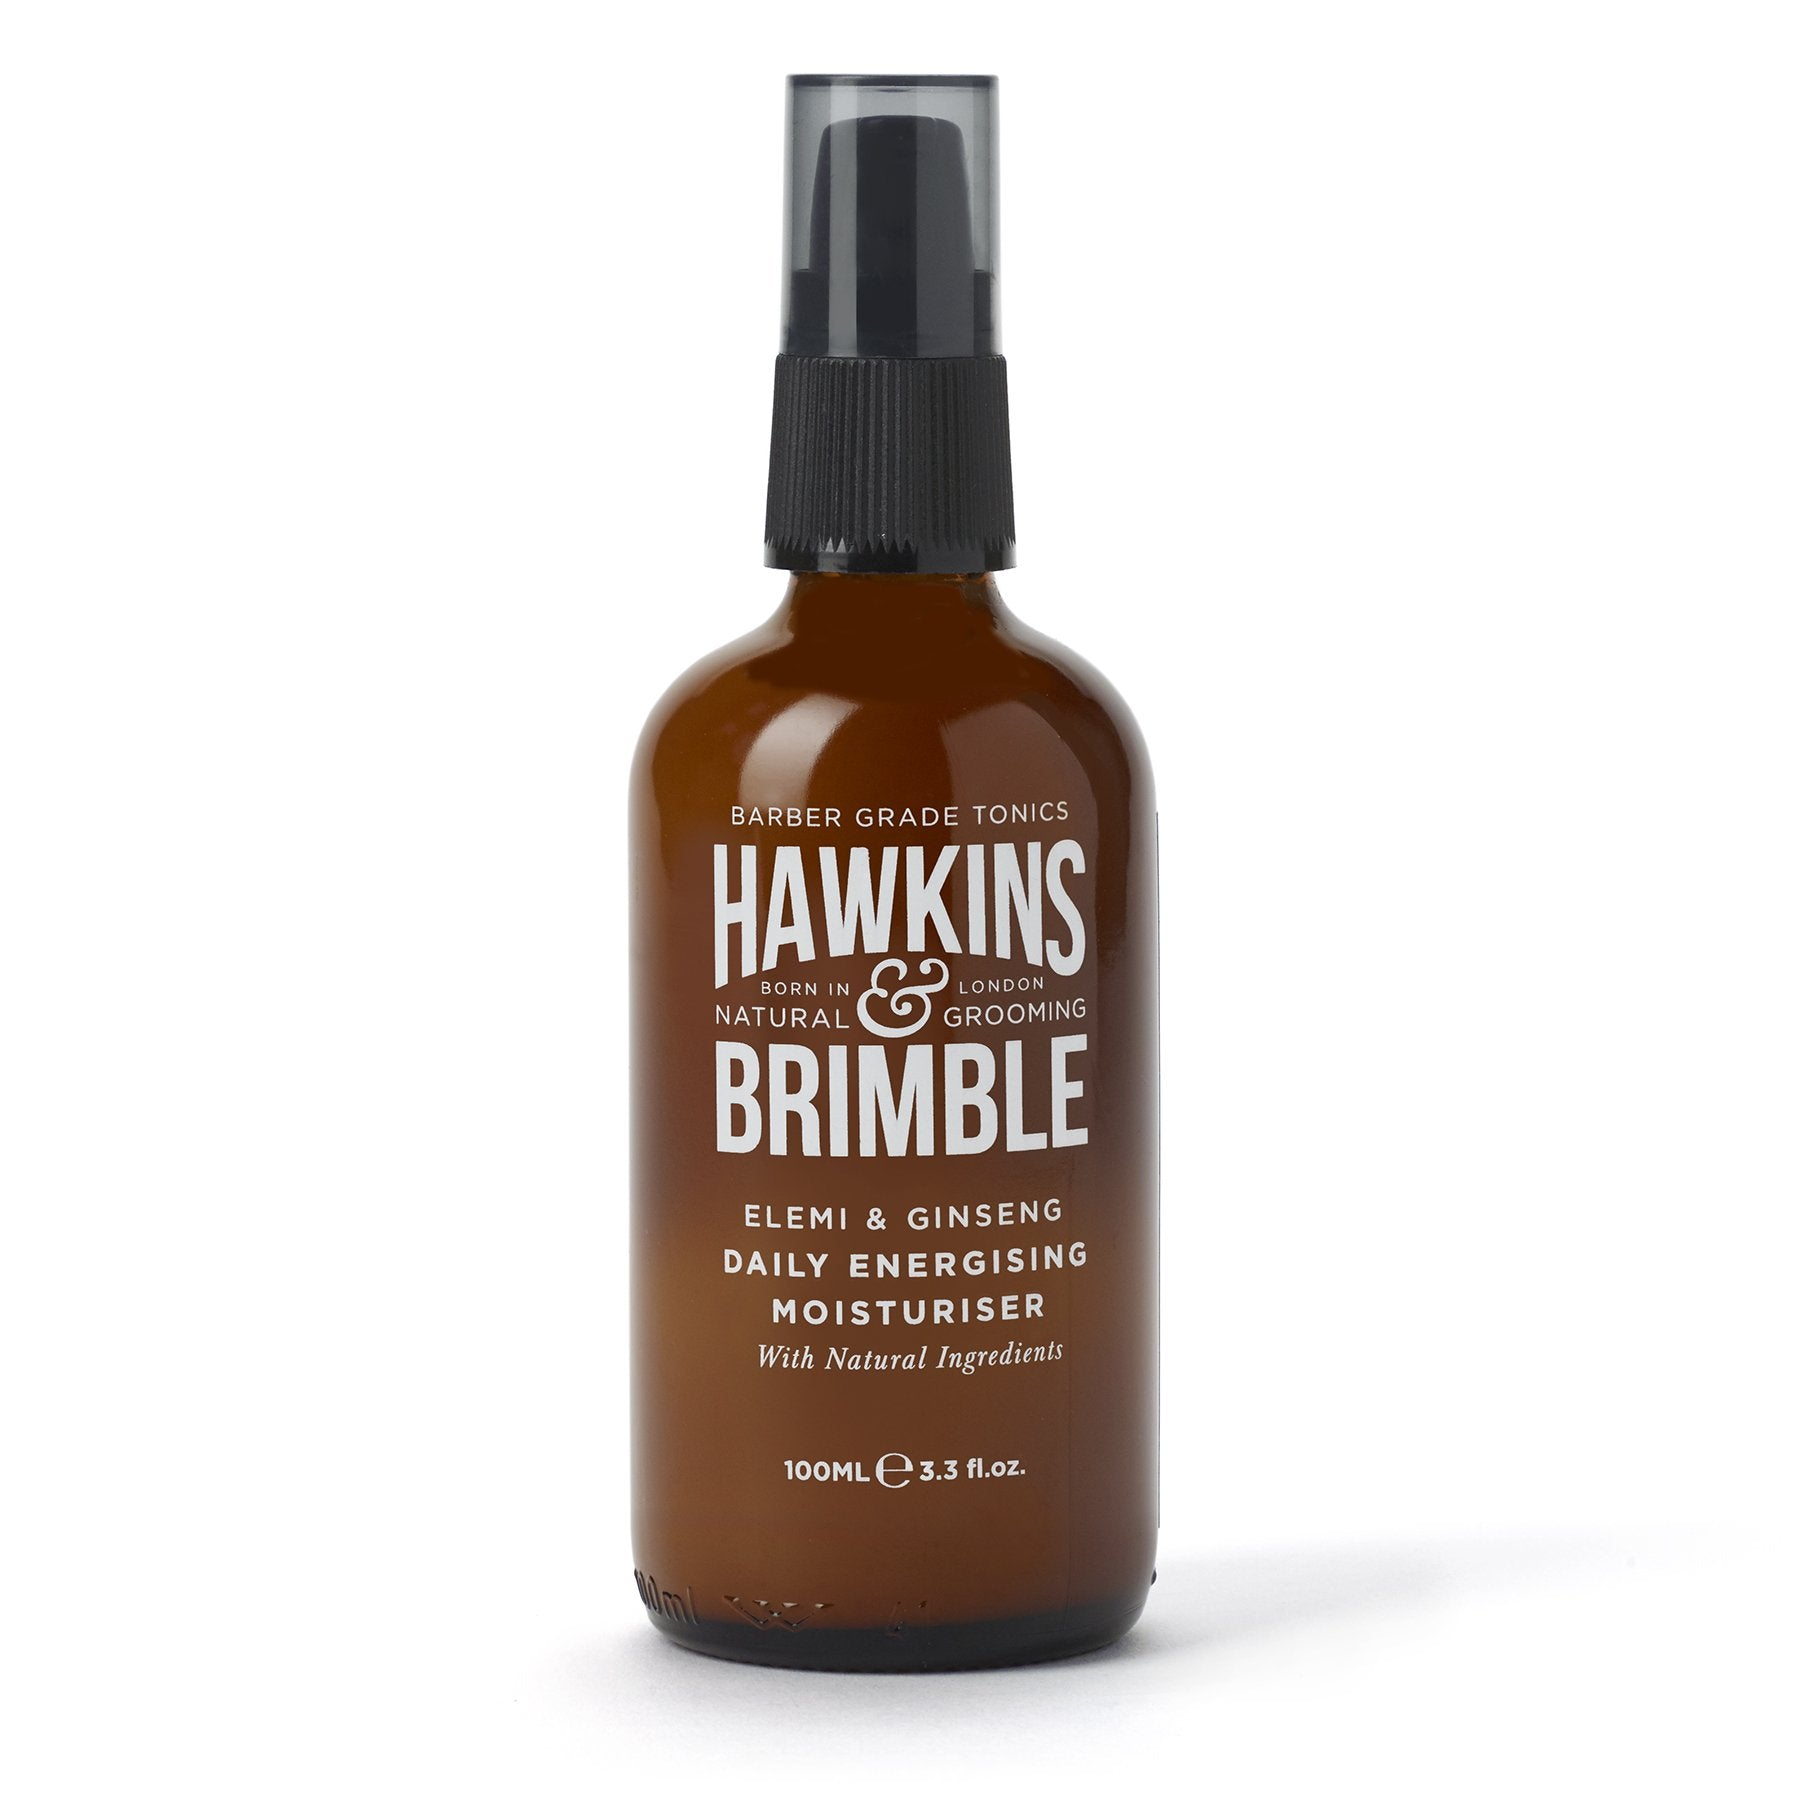 Hawkins and Brimble Daily Energising Moisturiser, 100ml